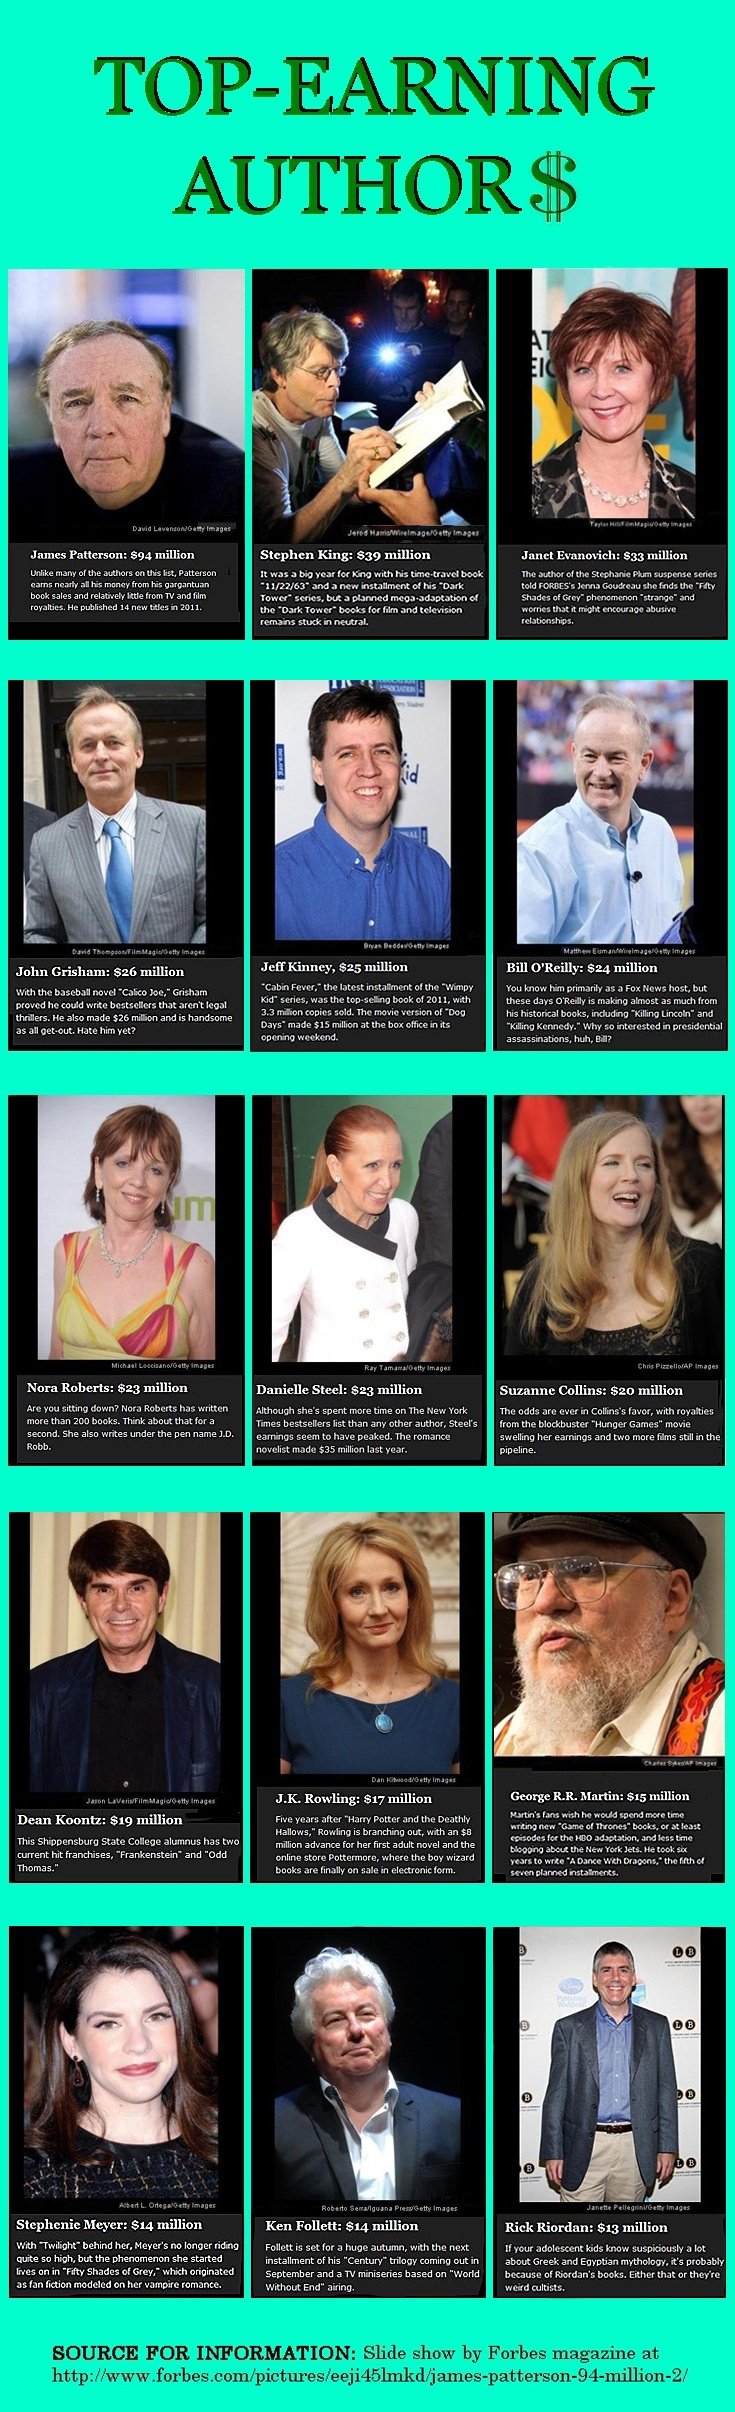 See the slide show on Forbes site at http://www.forbes.com/pictures/eeji45lmkd/james-patterson-94-million-2/ The lesson here is not how to get rich as a writer but to see the proof of what's possible. And the output of some of these authors is incredible.